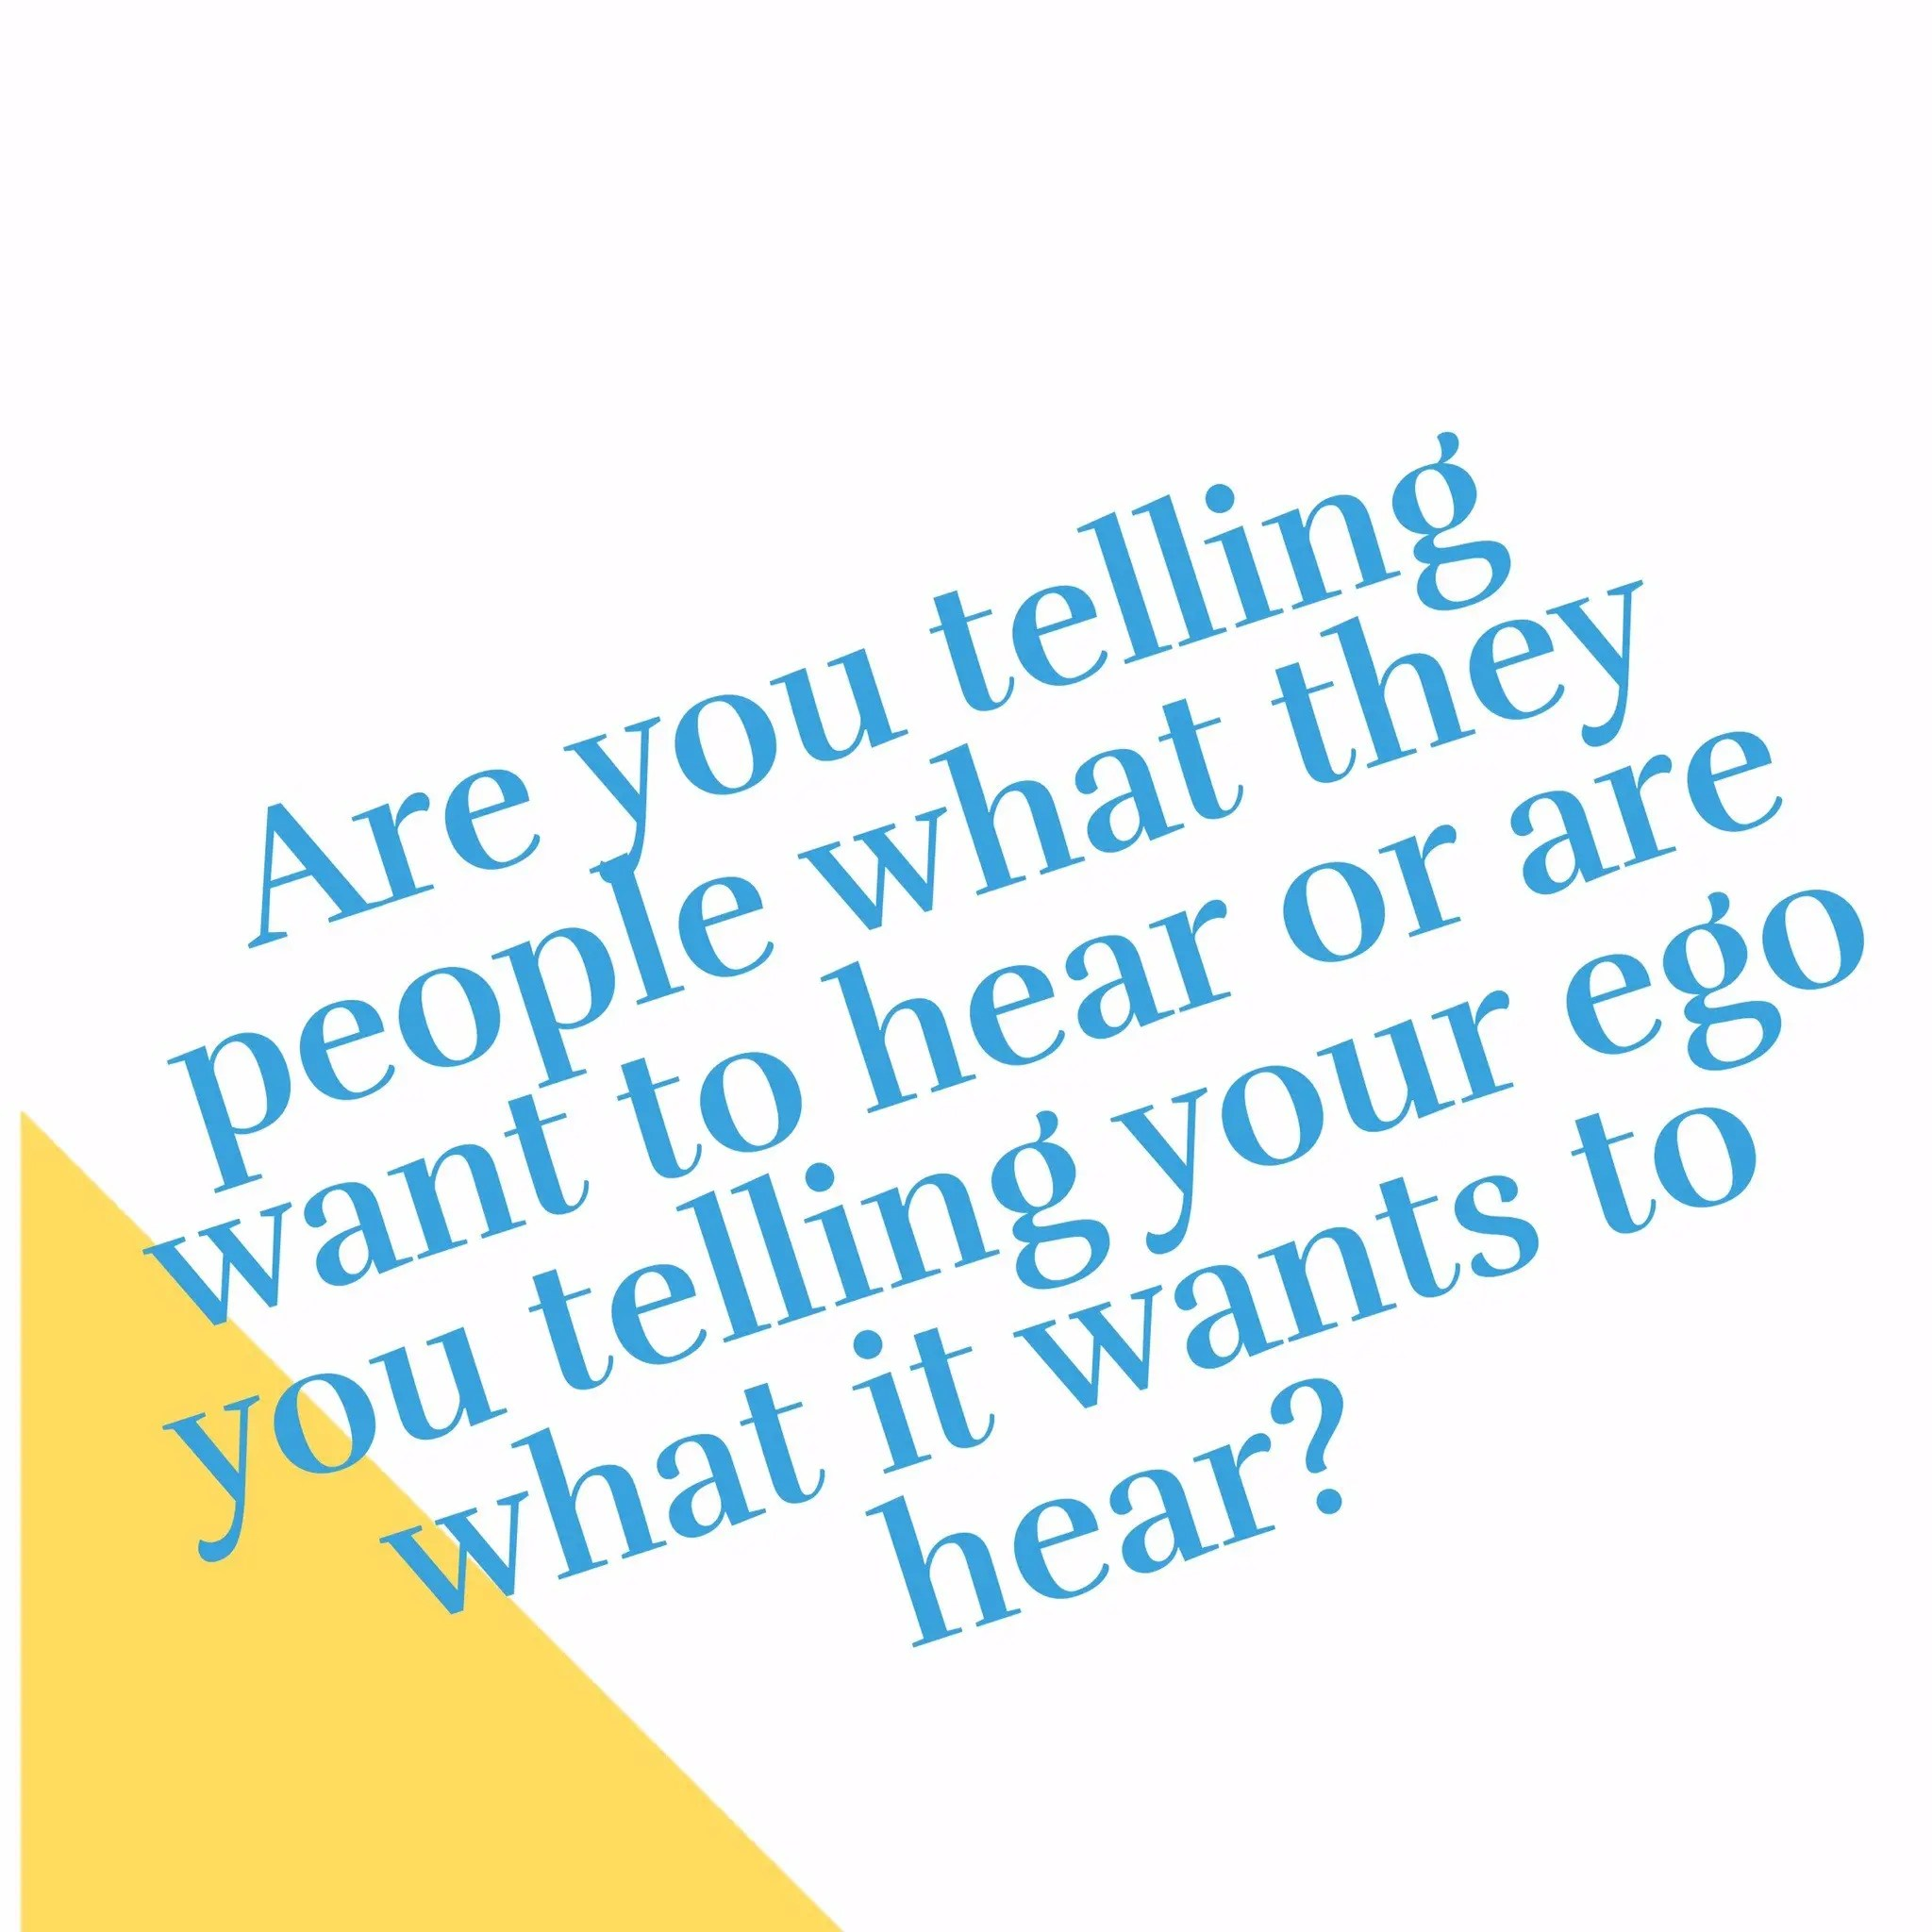 Telling People What We Think They Want To Hear Leads To